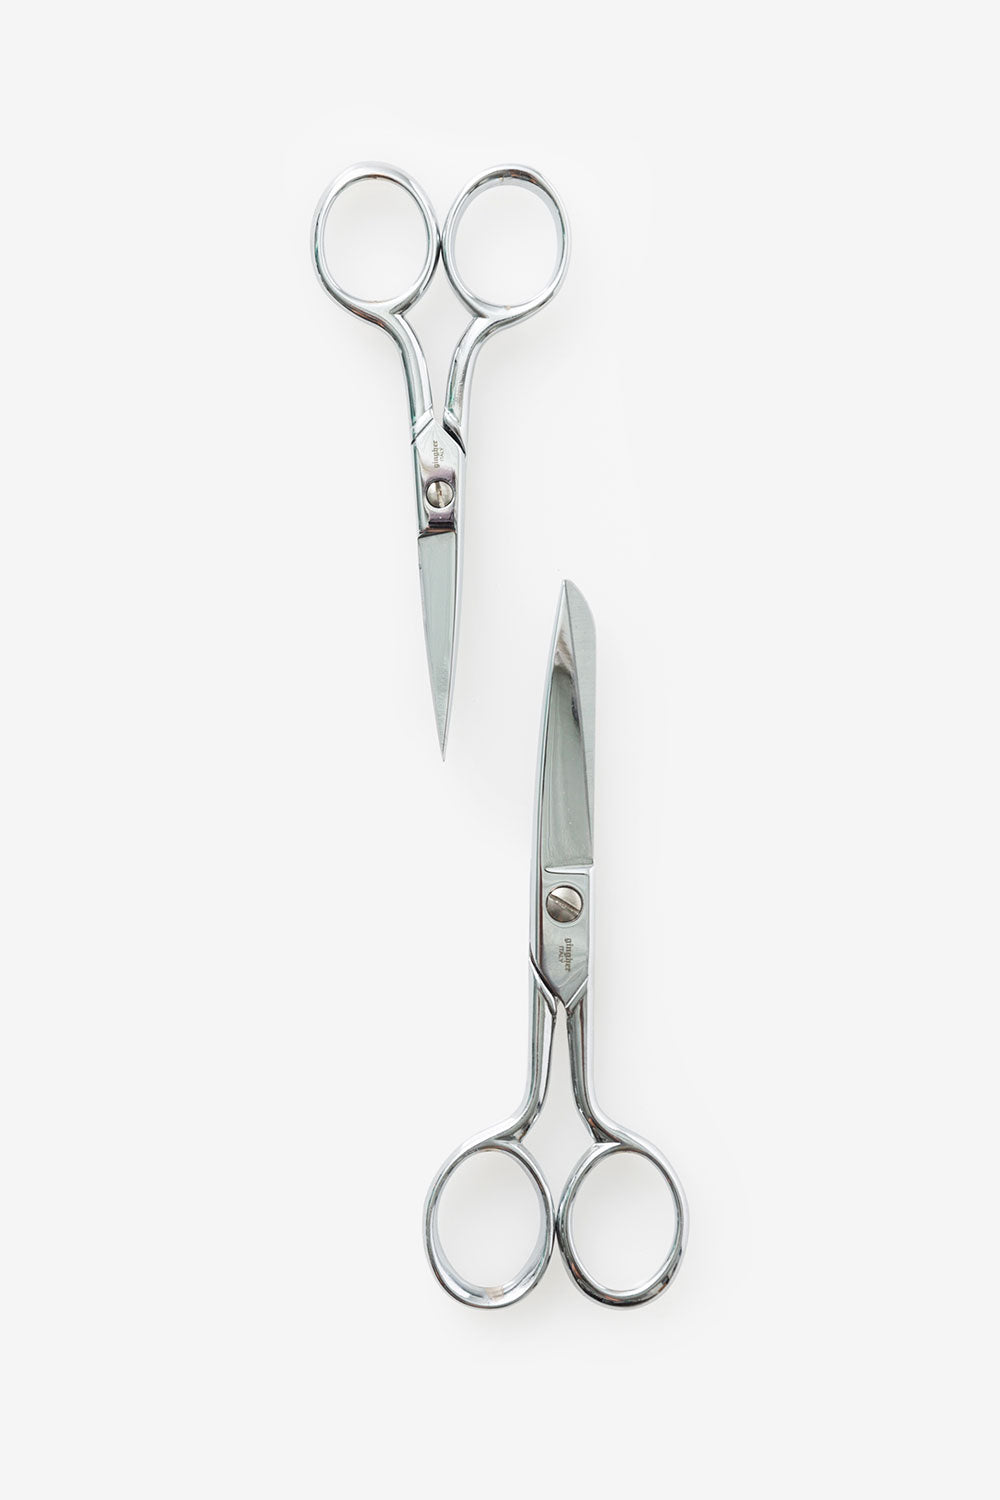 image of Classic Embroidery Scissors